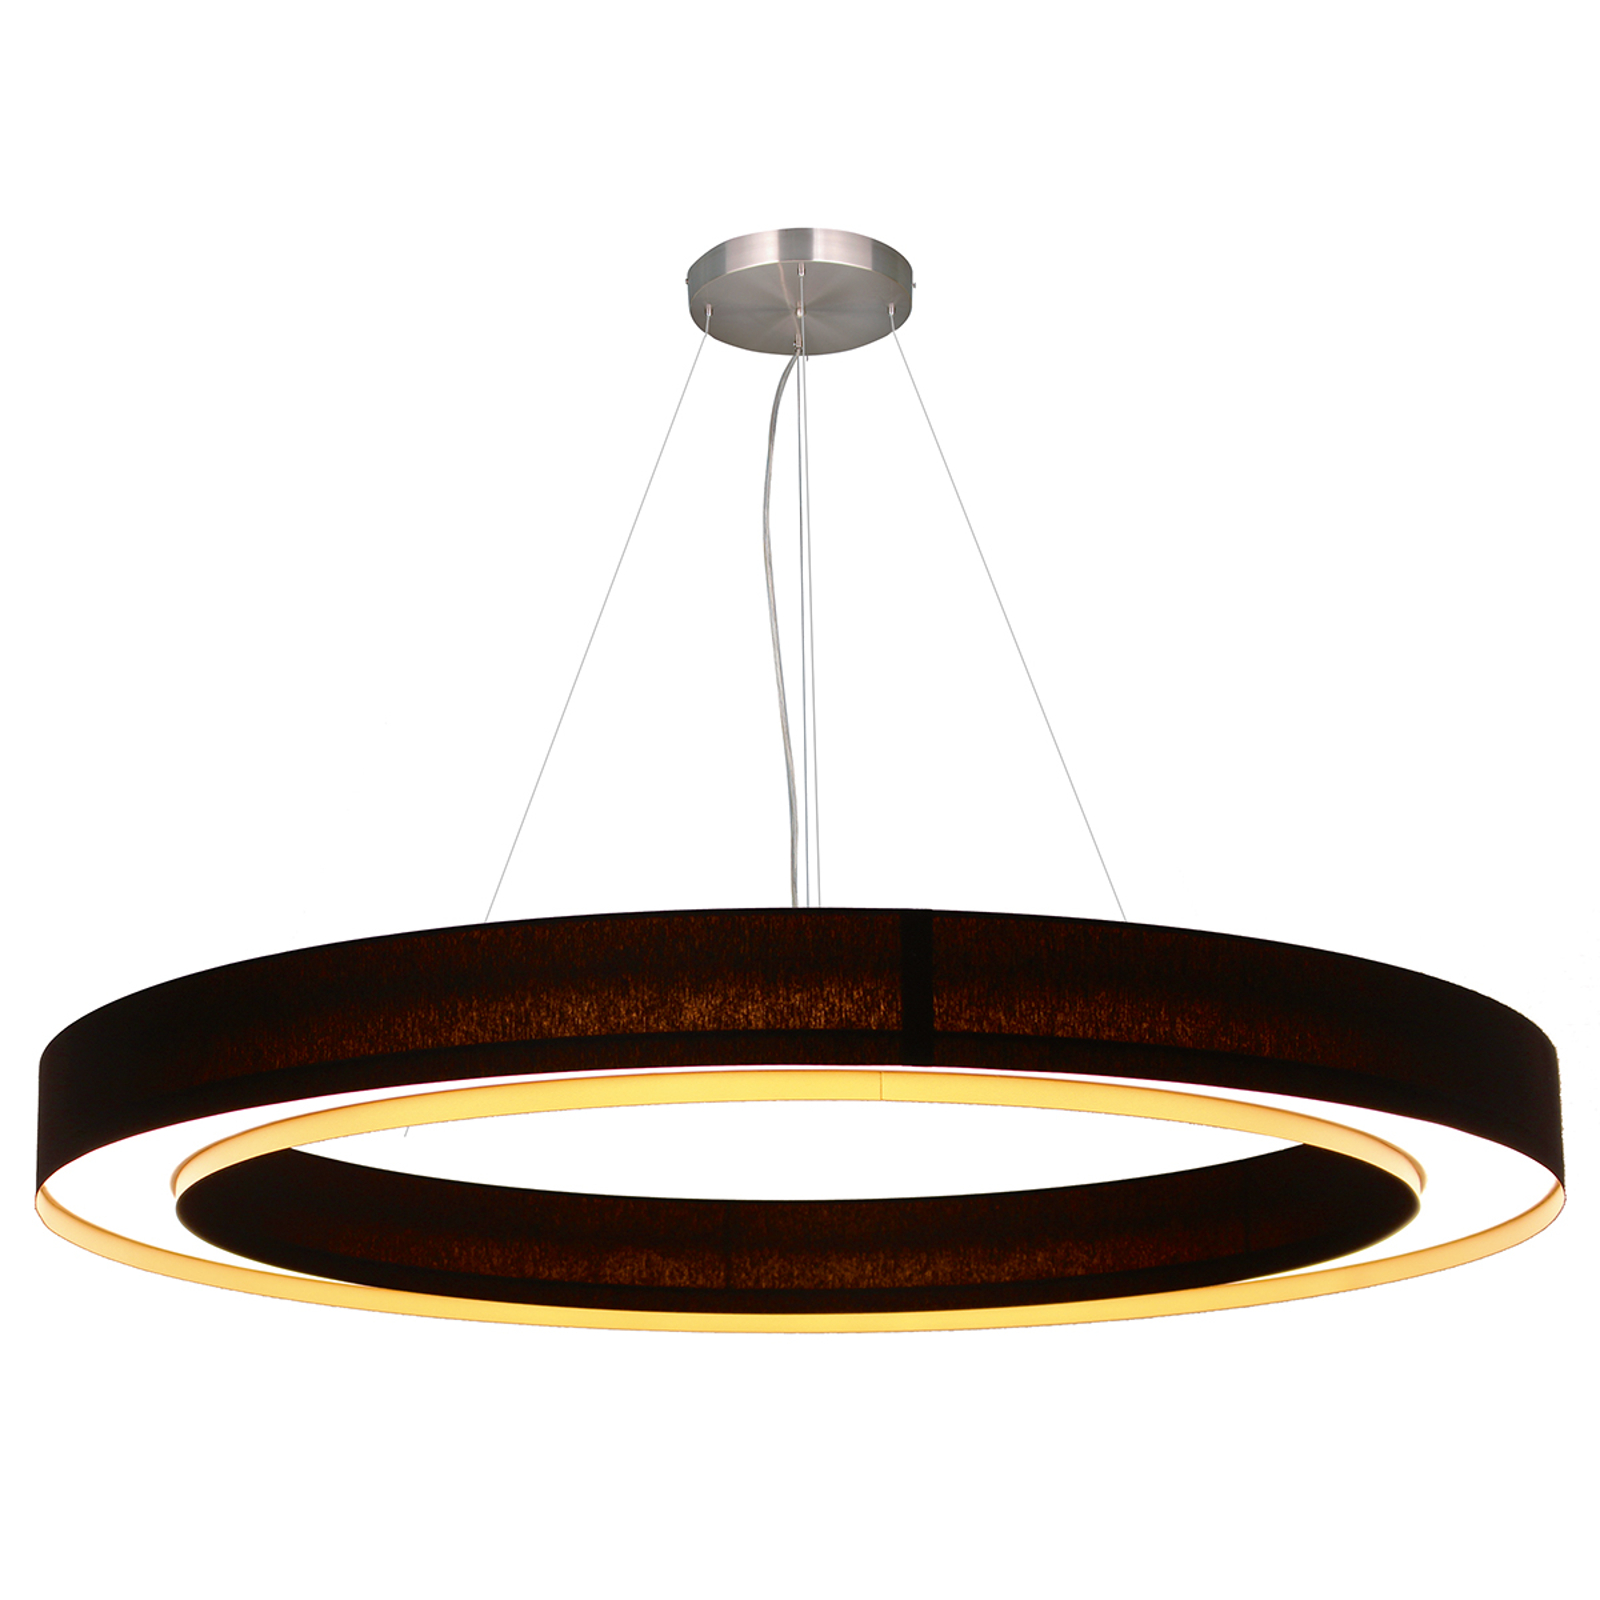 Suspension LED Cloud en forme d'anneau, 96 cm